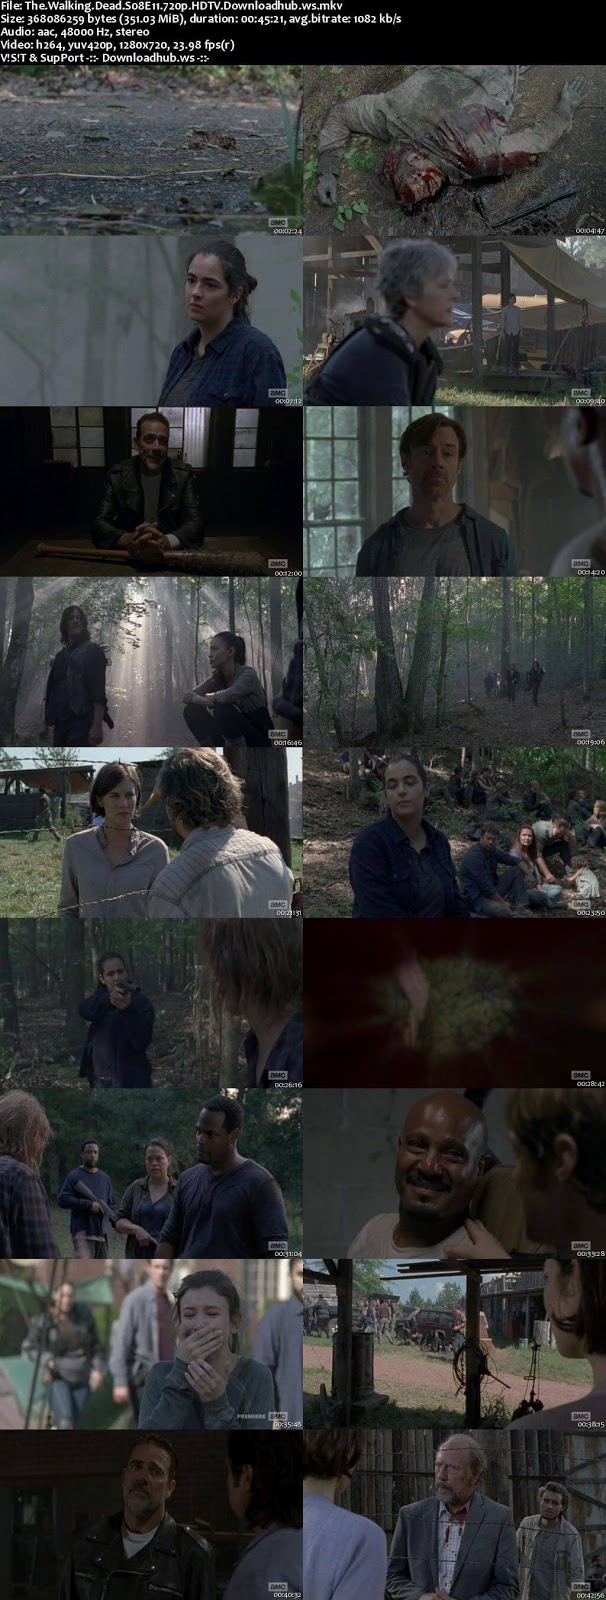 The Walking Dead S08E11 350MB HDTV 720p x264